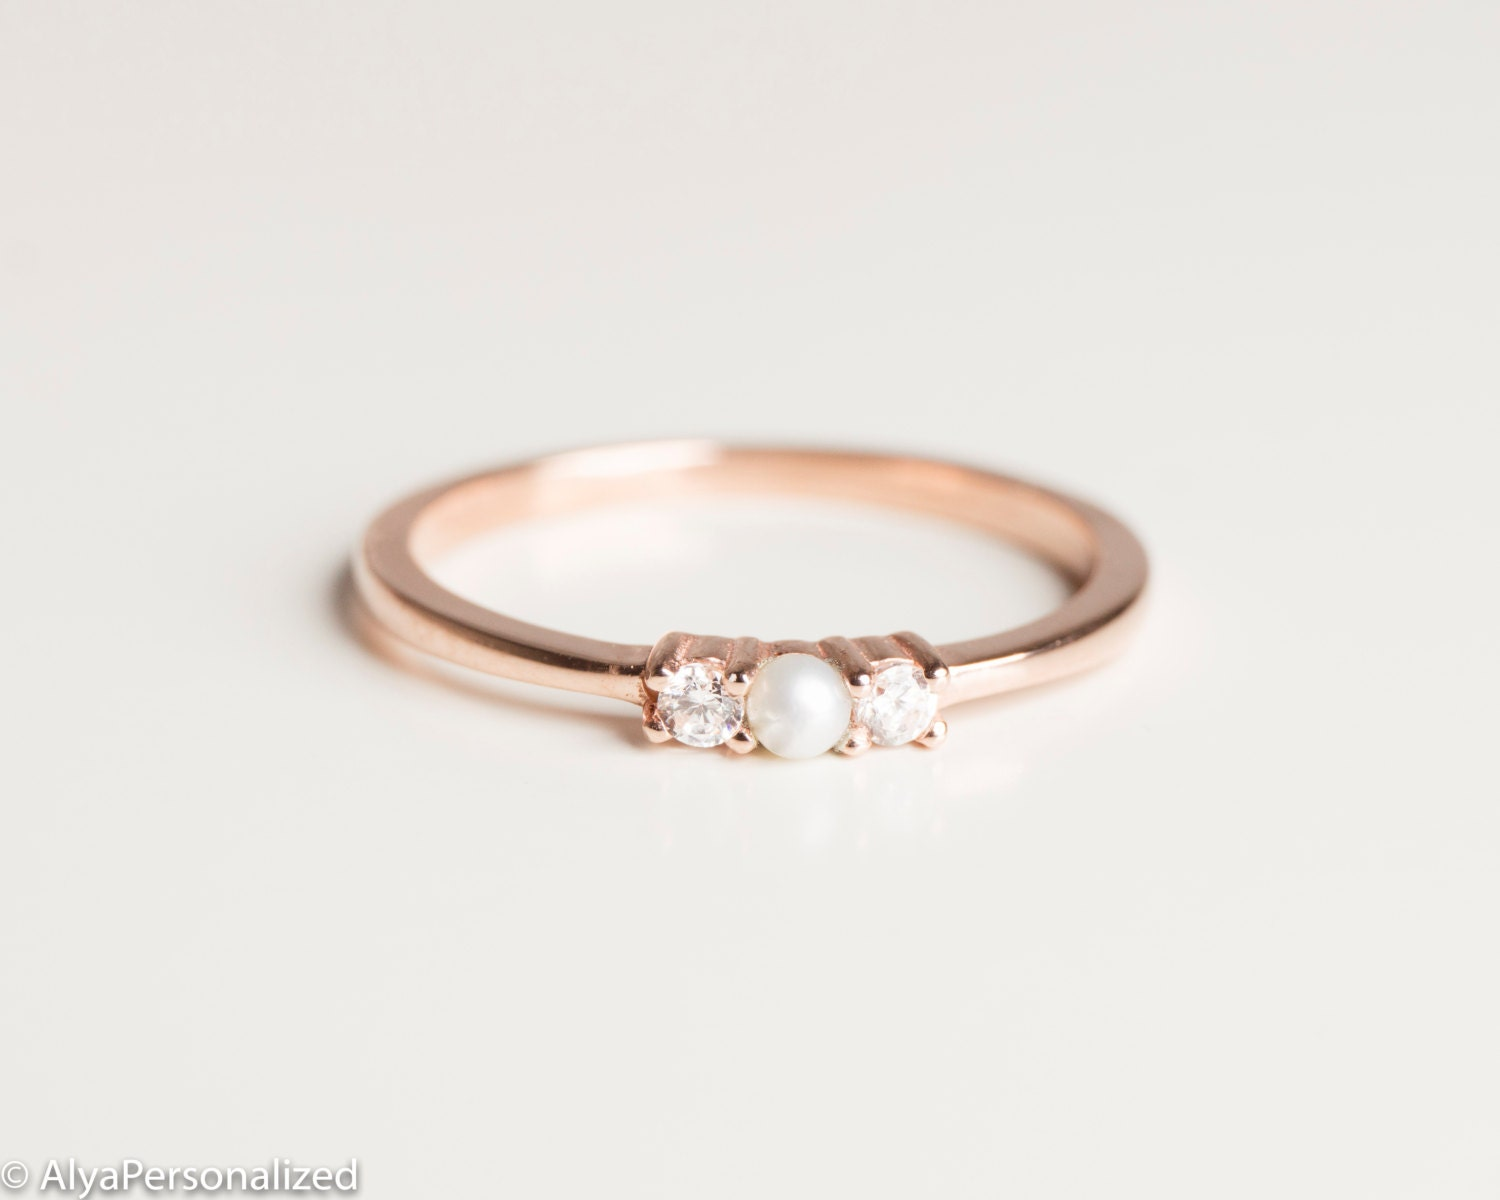 en mv round rose band wedding cut to kay diamond tw rings kaystore gold zm zoom bands ct hover